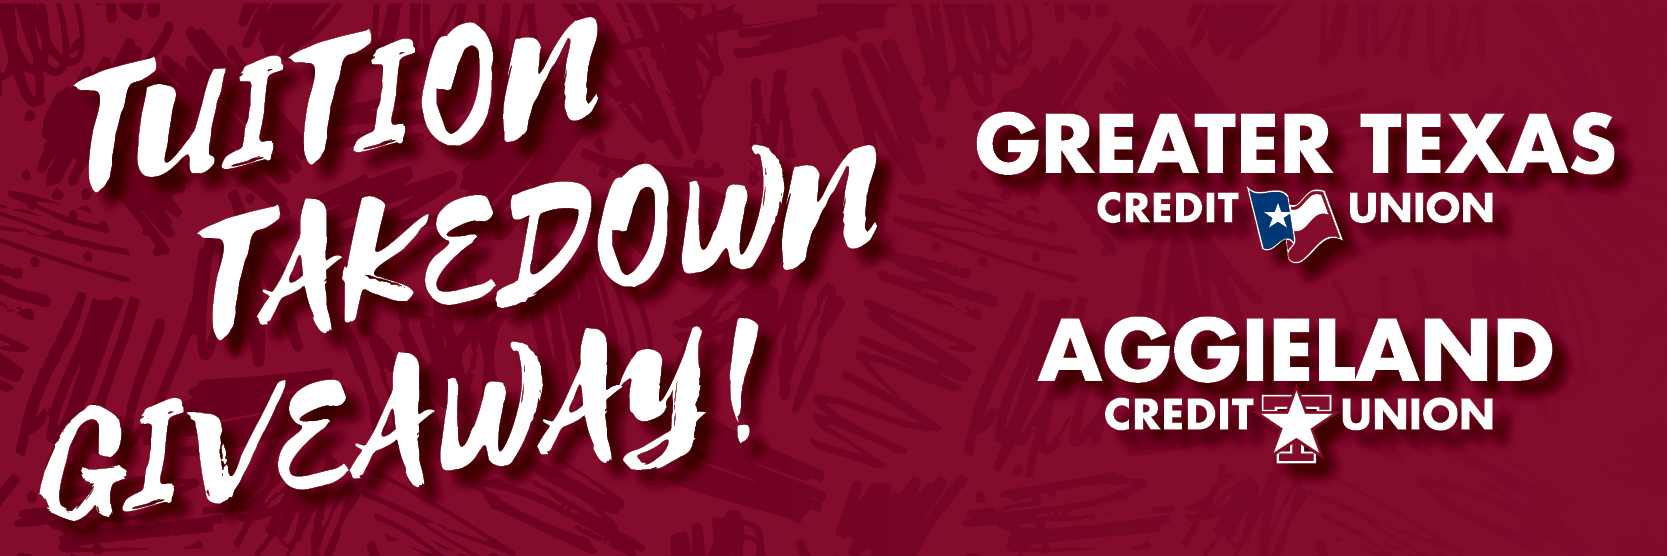 Aggieland Credit Union presents our Tuition Takedown Giveaway! We will be giving away up to $5,000 in tuition for the fall semester of 2017*. Terms and Conditions apply.